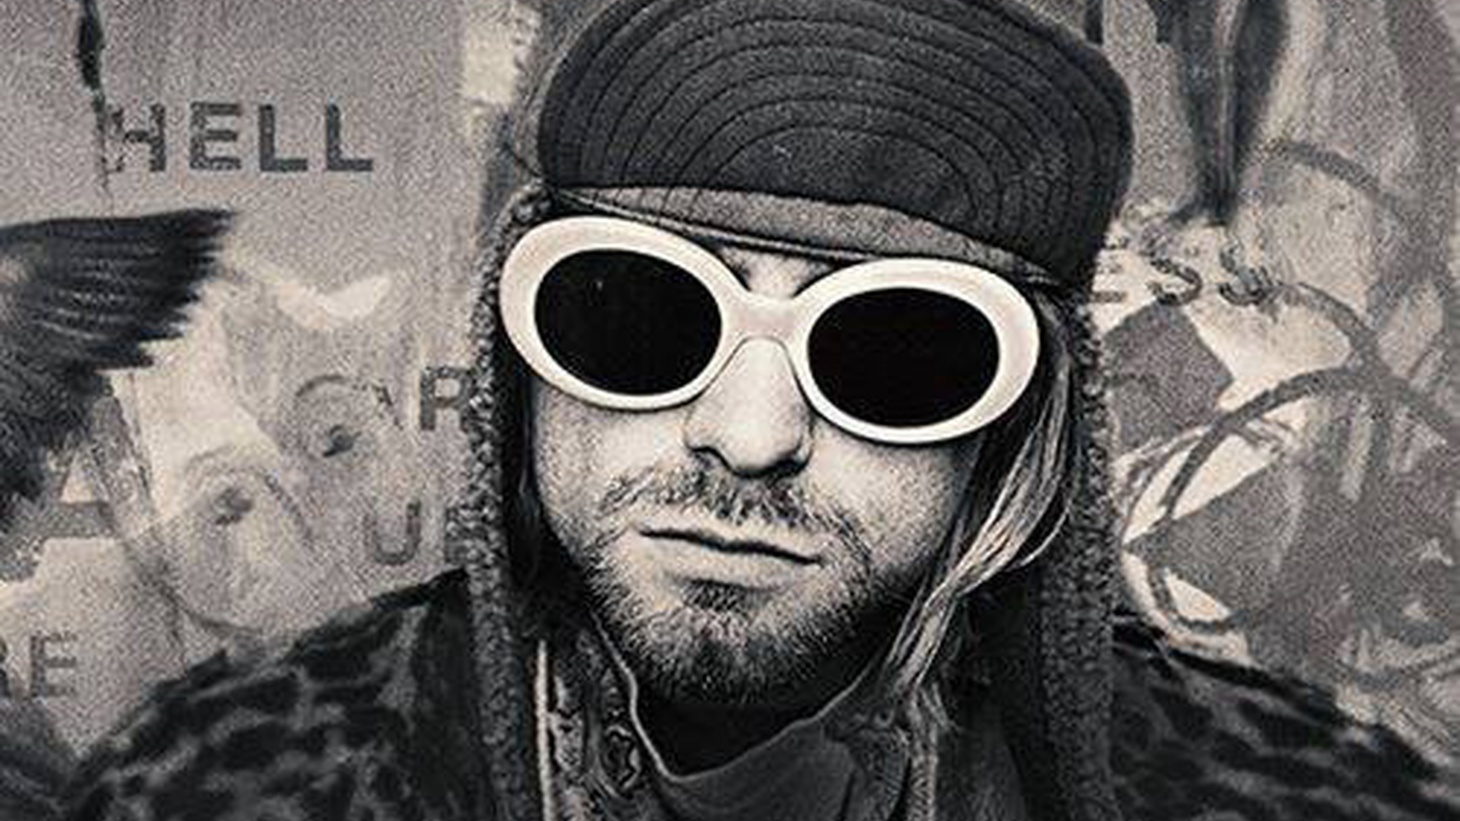 In 2007, Kurt Cobain's widow, Courtney Love, contacted documentary filmmaker Brett Morgen with the idea of making a film about her late husband. Eight years and many twists and turns later, the film Kurt Cobain: Montage of Heckis showing this week until Thursday at the Arclight in Hollywood. It will also have its HBO premiere next Monday, May 4.